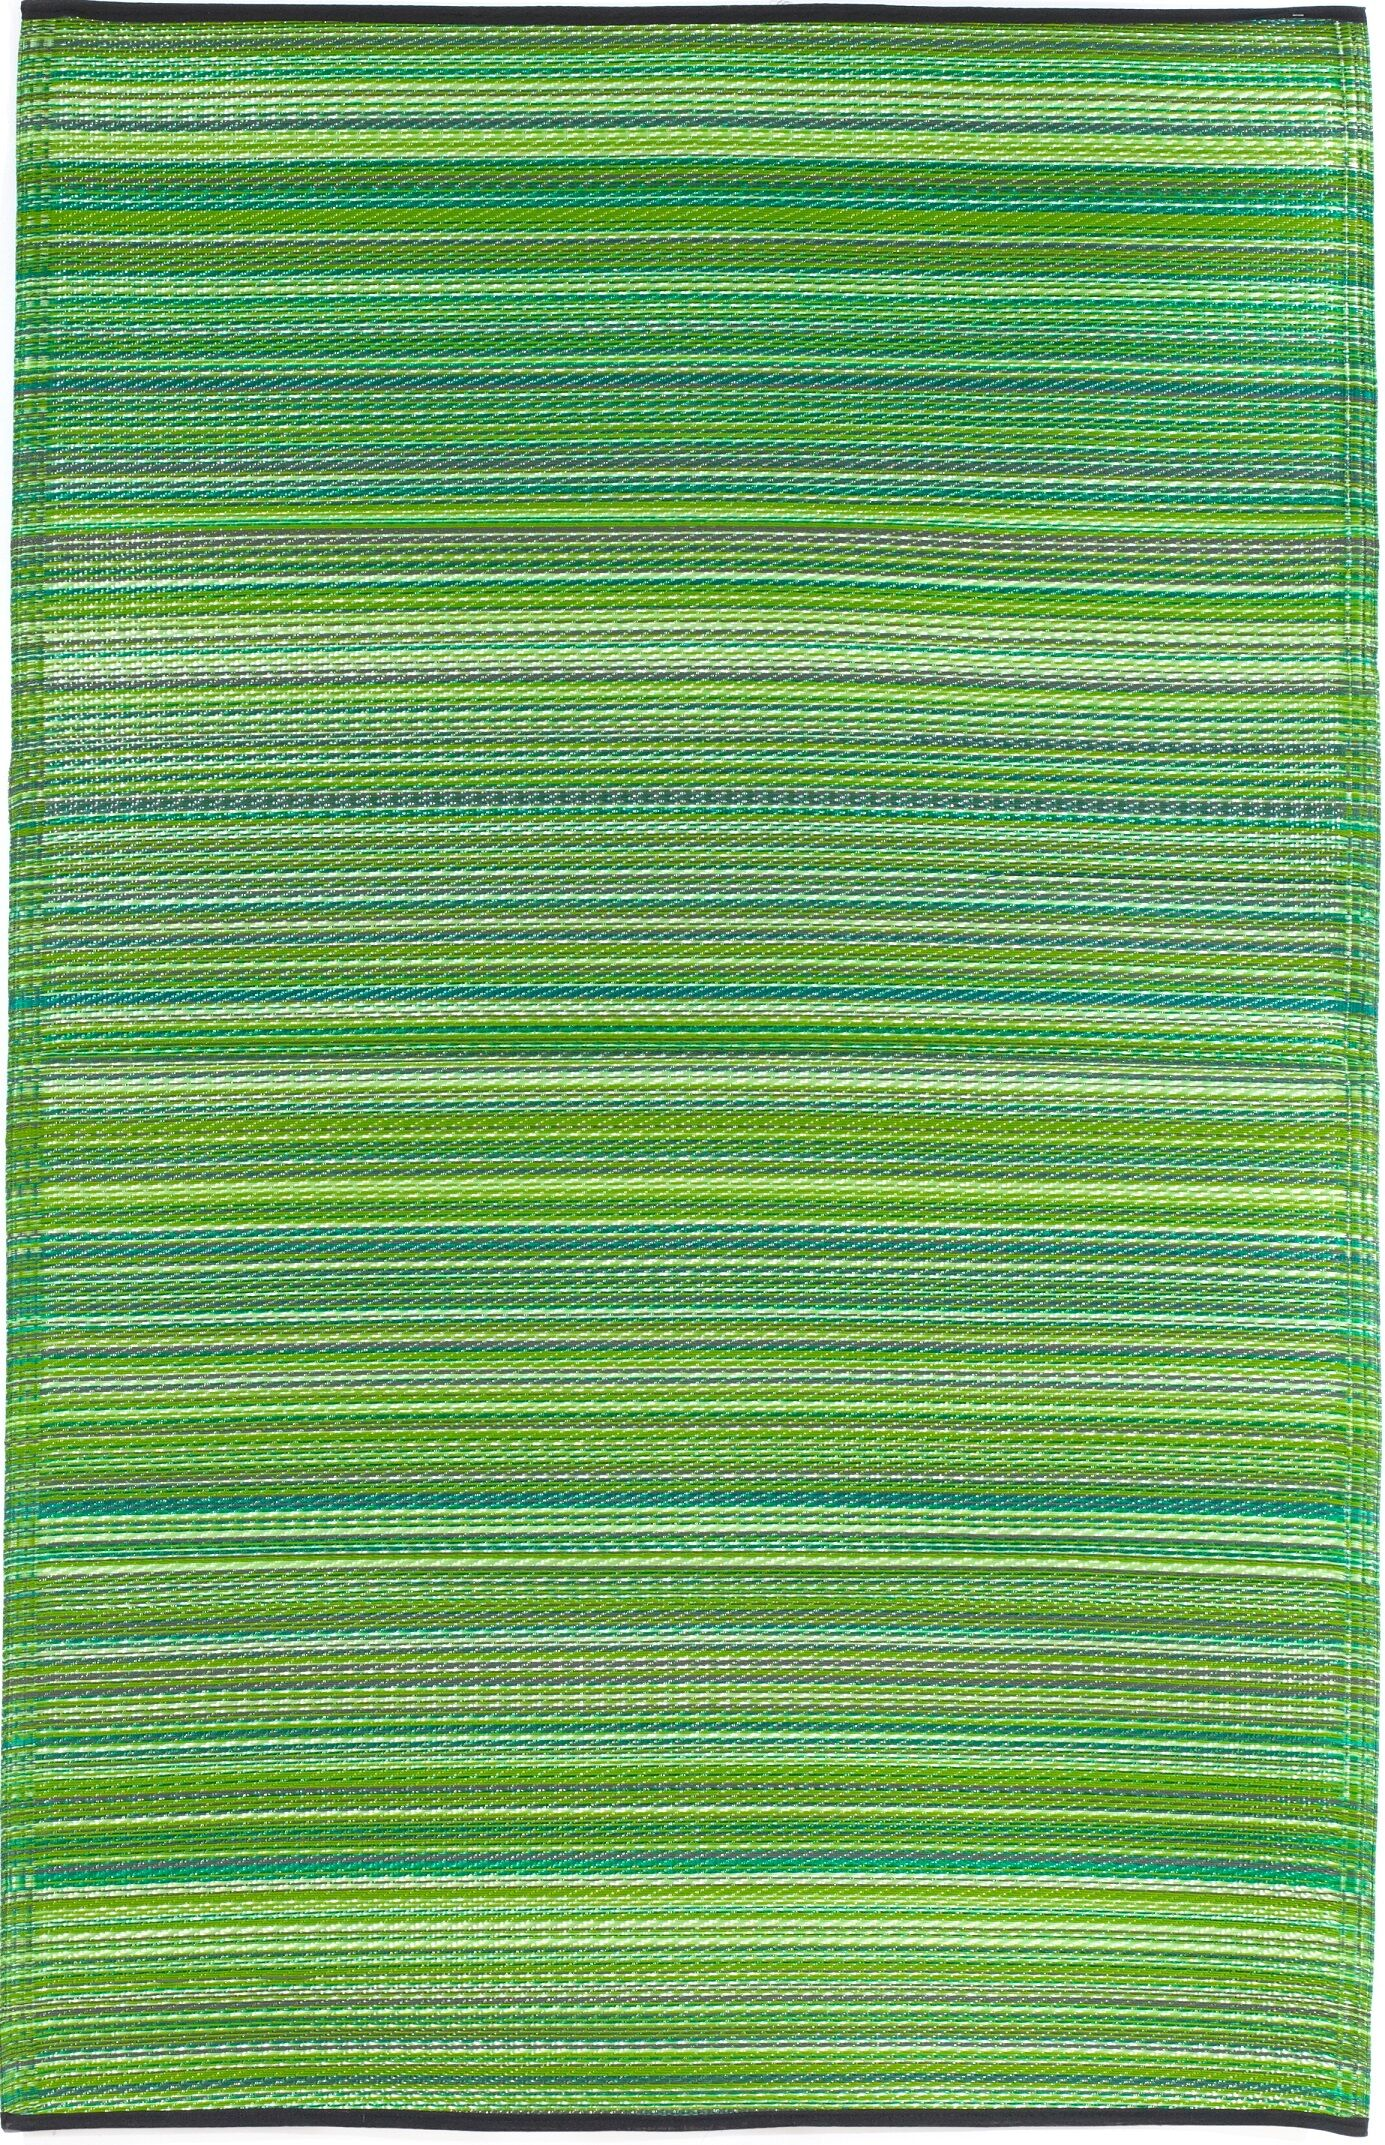 Raub Hand-Woven Green Indoor/Outdoor Area Rug Rug Size: Rectangle 8' x 10'